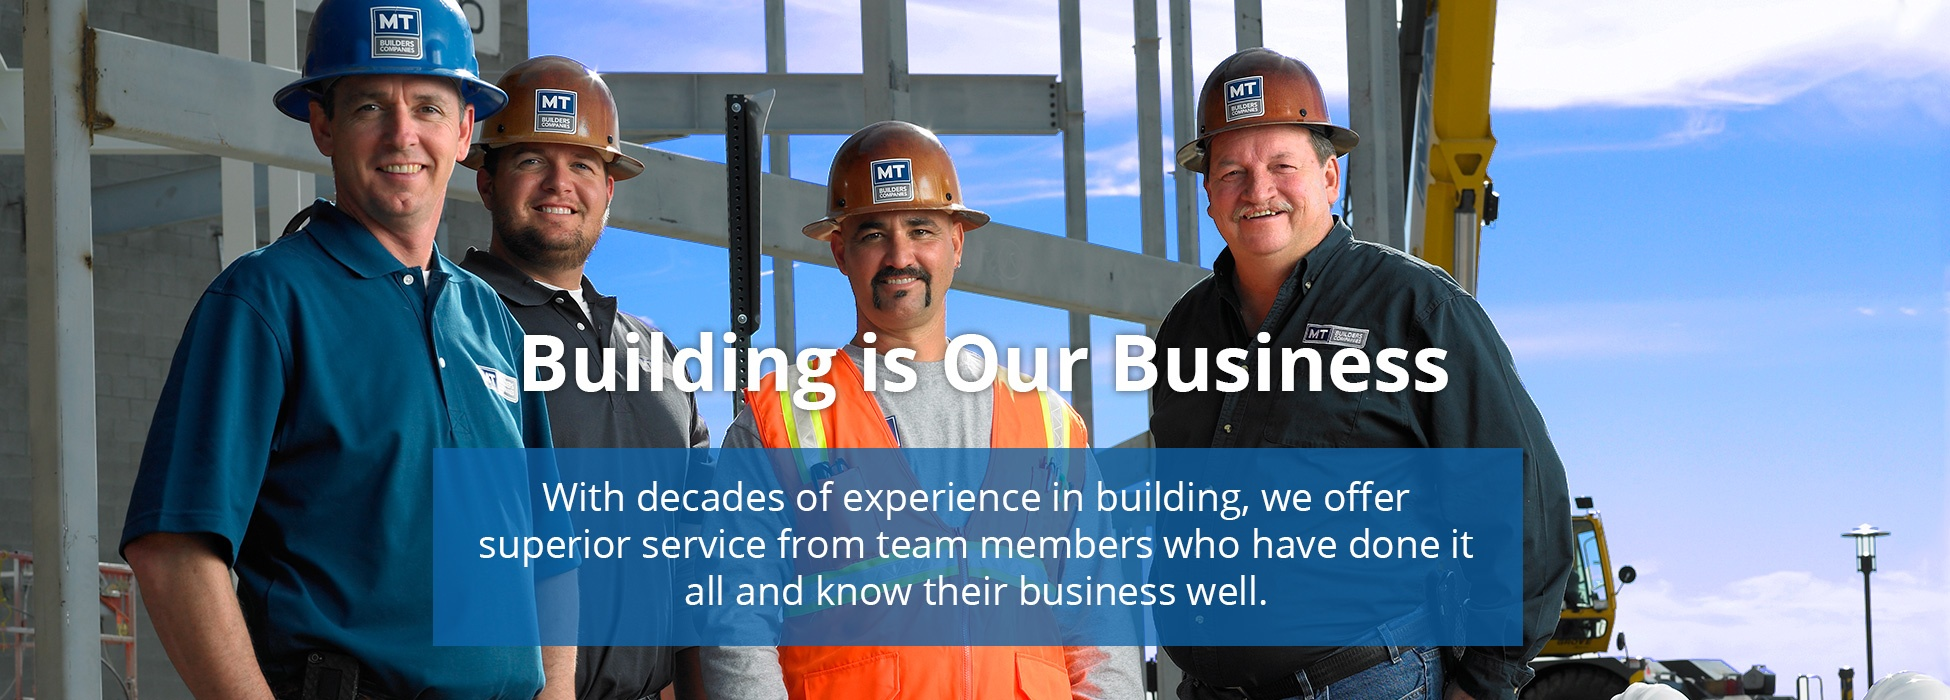 Building is Our Business